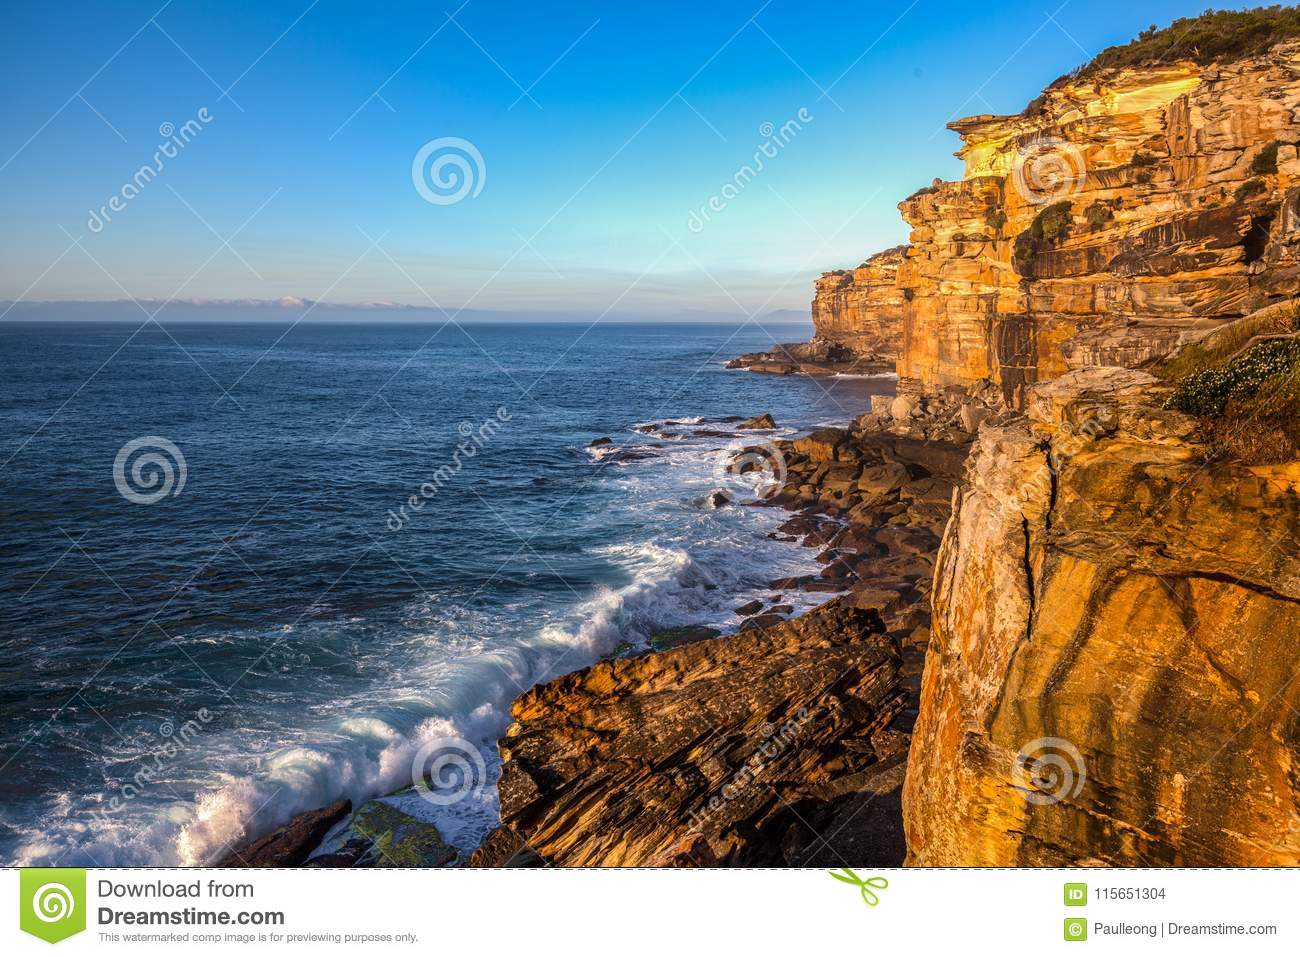 Royal National Park coast, New South Wales, Australia, in the morning.